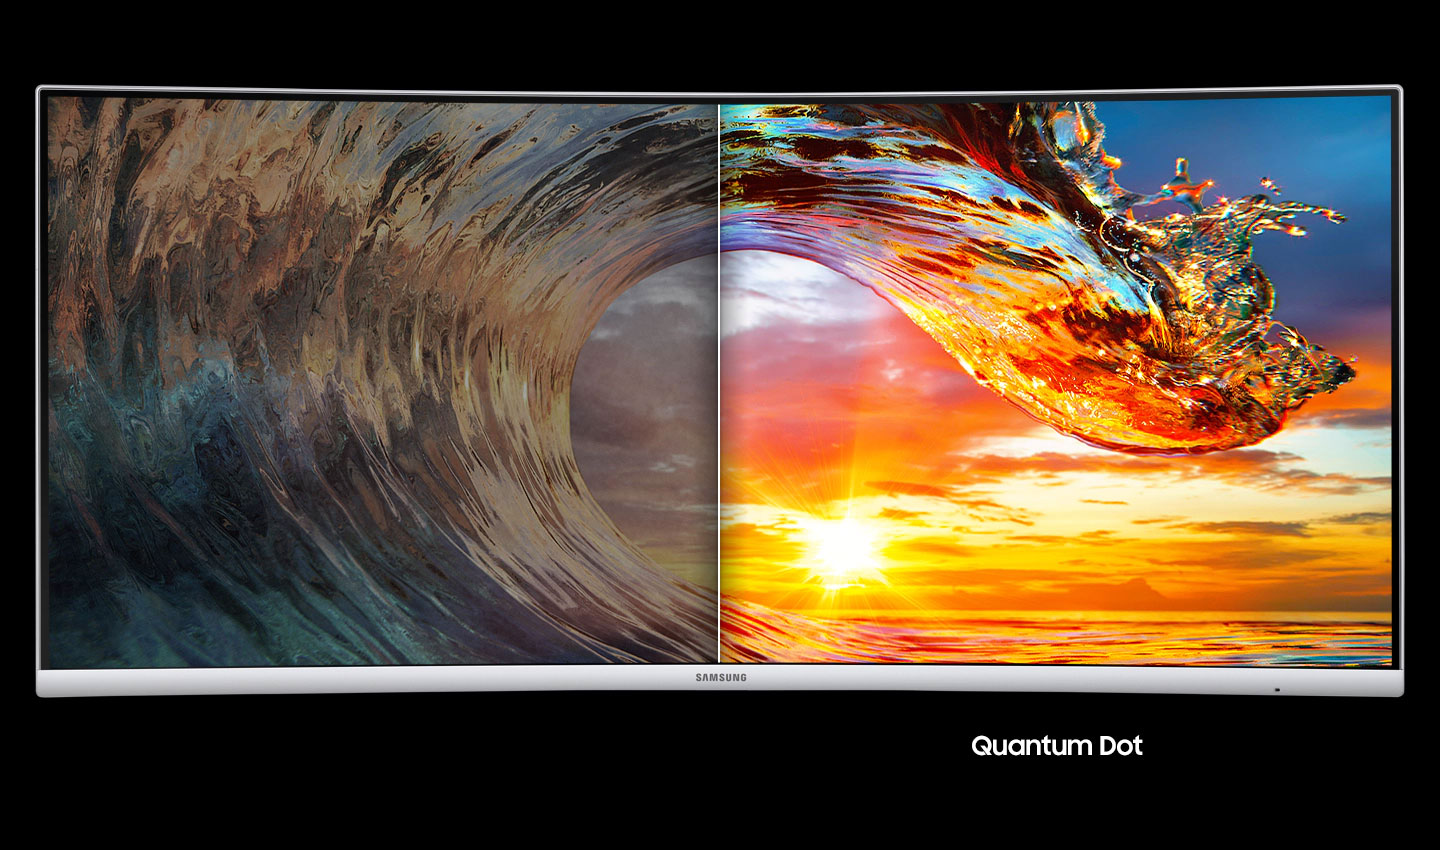 a monitor with two images,showing different effect between Quantum dot off and on